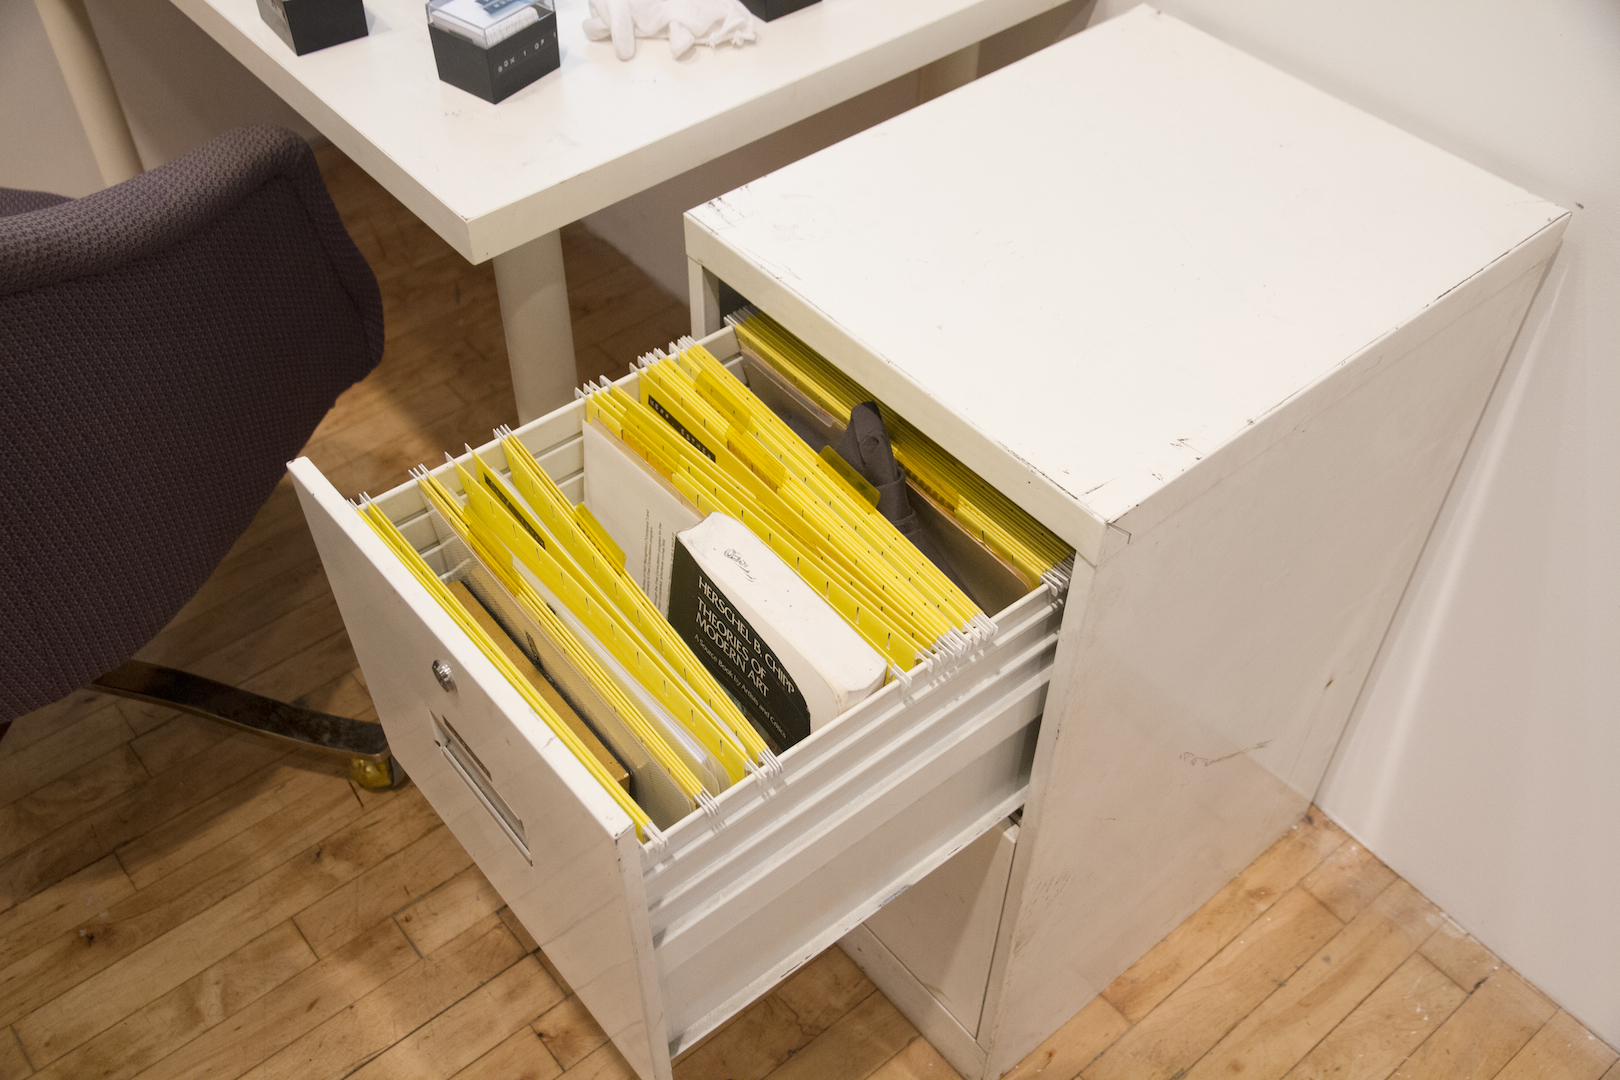 Installation View: Archive Files